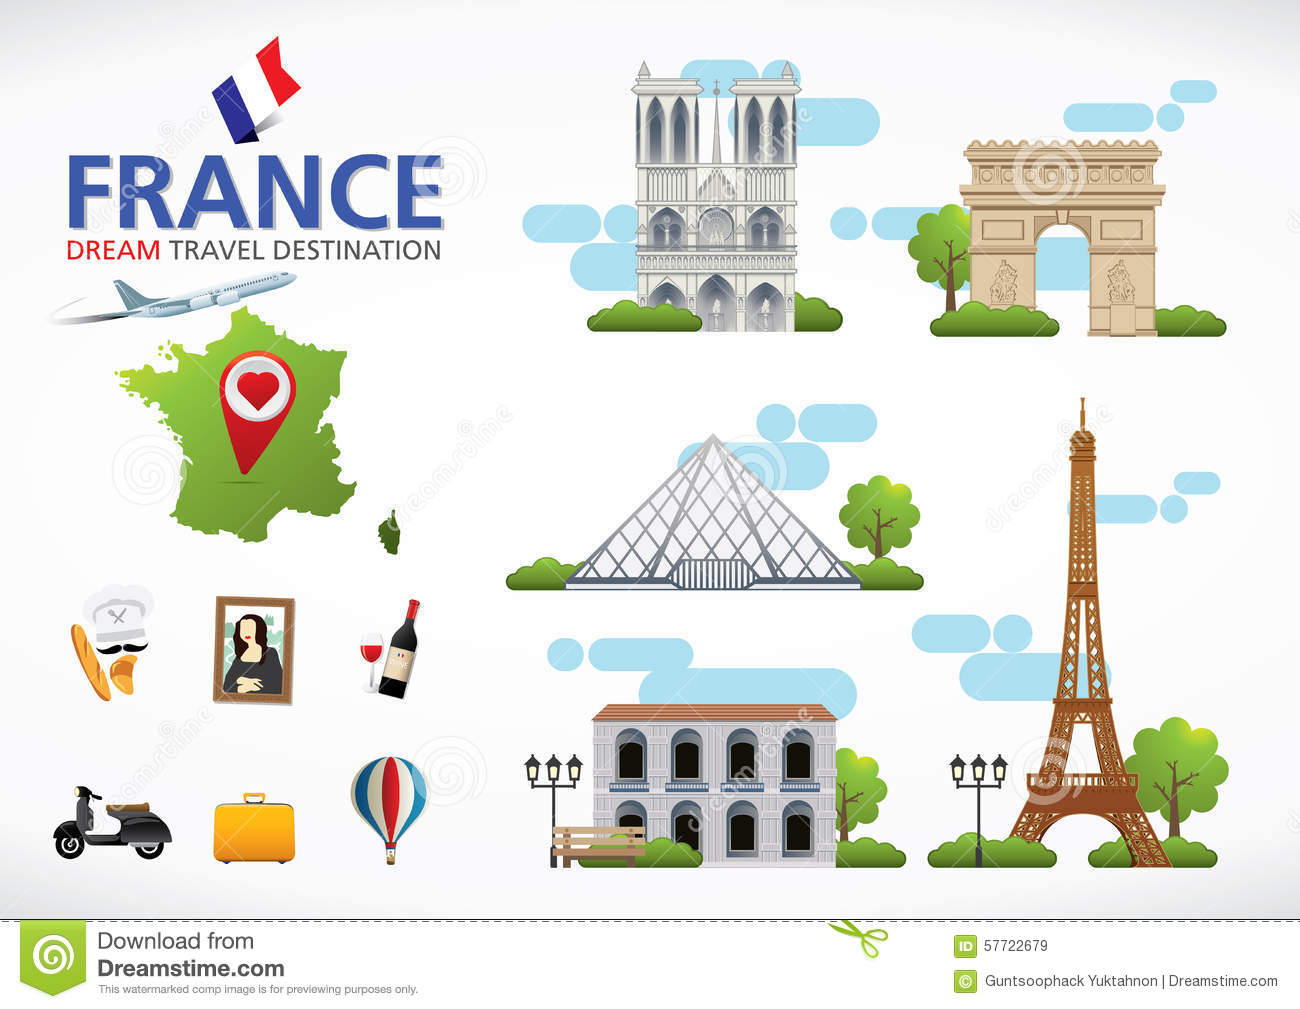 France Travel Dreams Destination France Travel Symbols